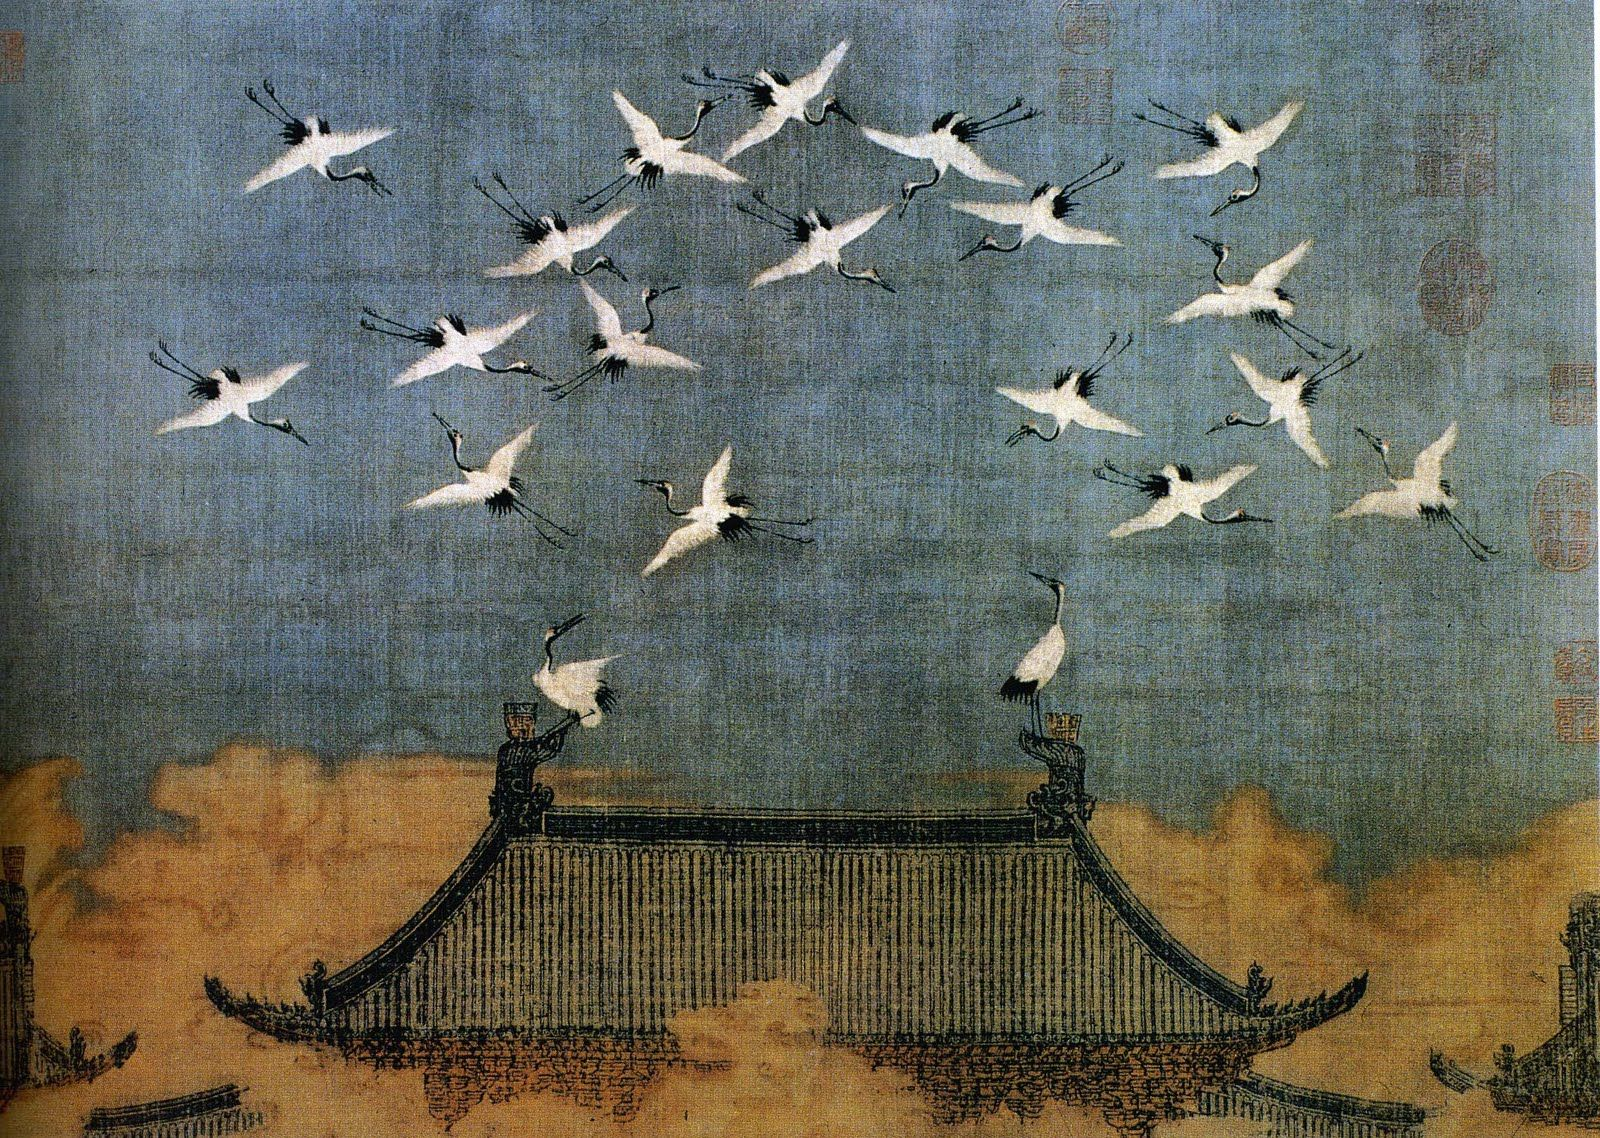 This is a painting entitled auspicious cranes by huizong for Dynasty mural works